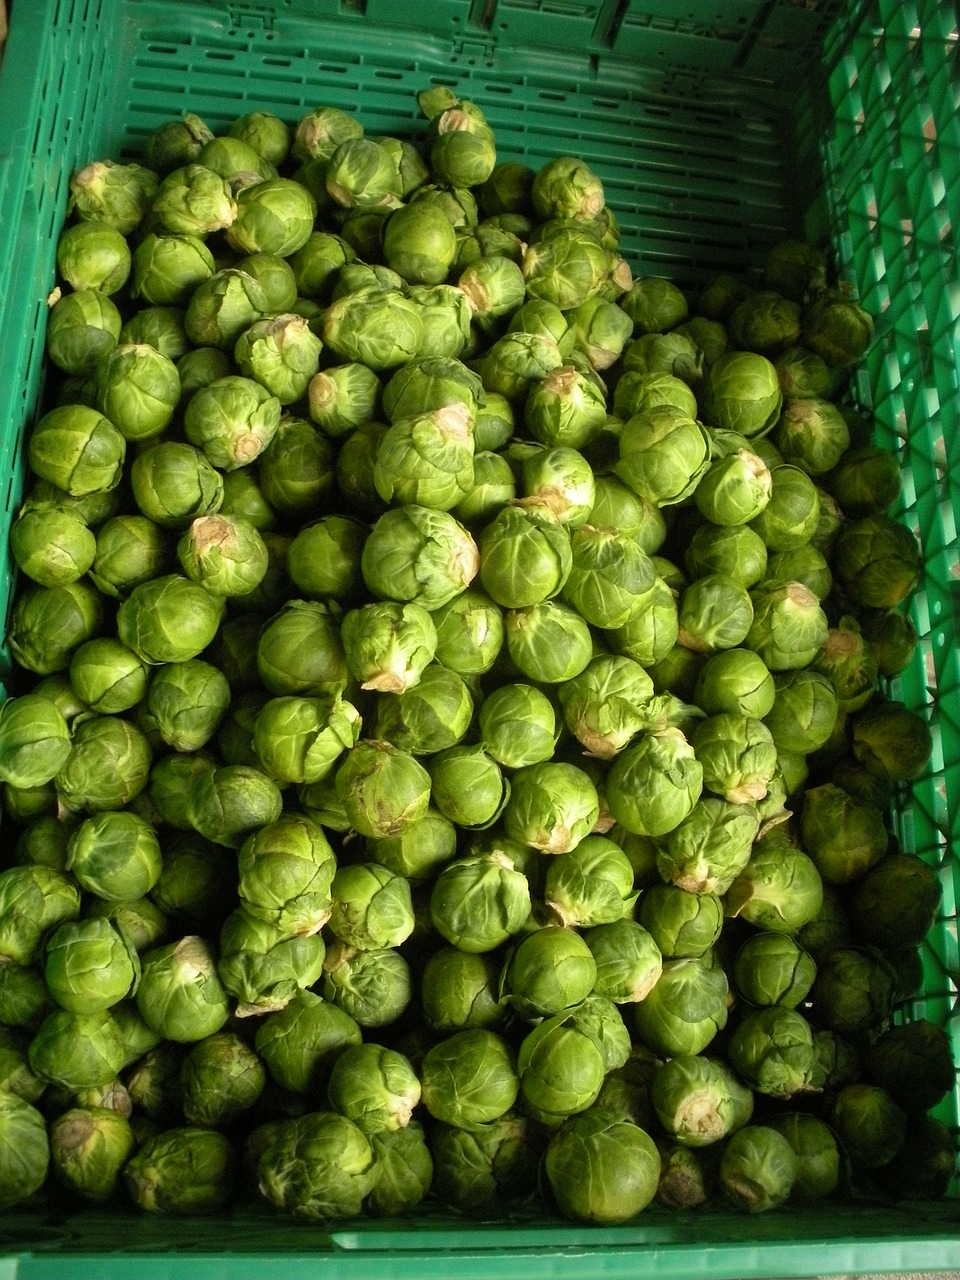 greengrocer brussels sprouts fresh free photo